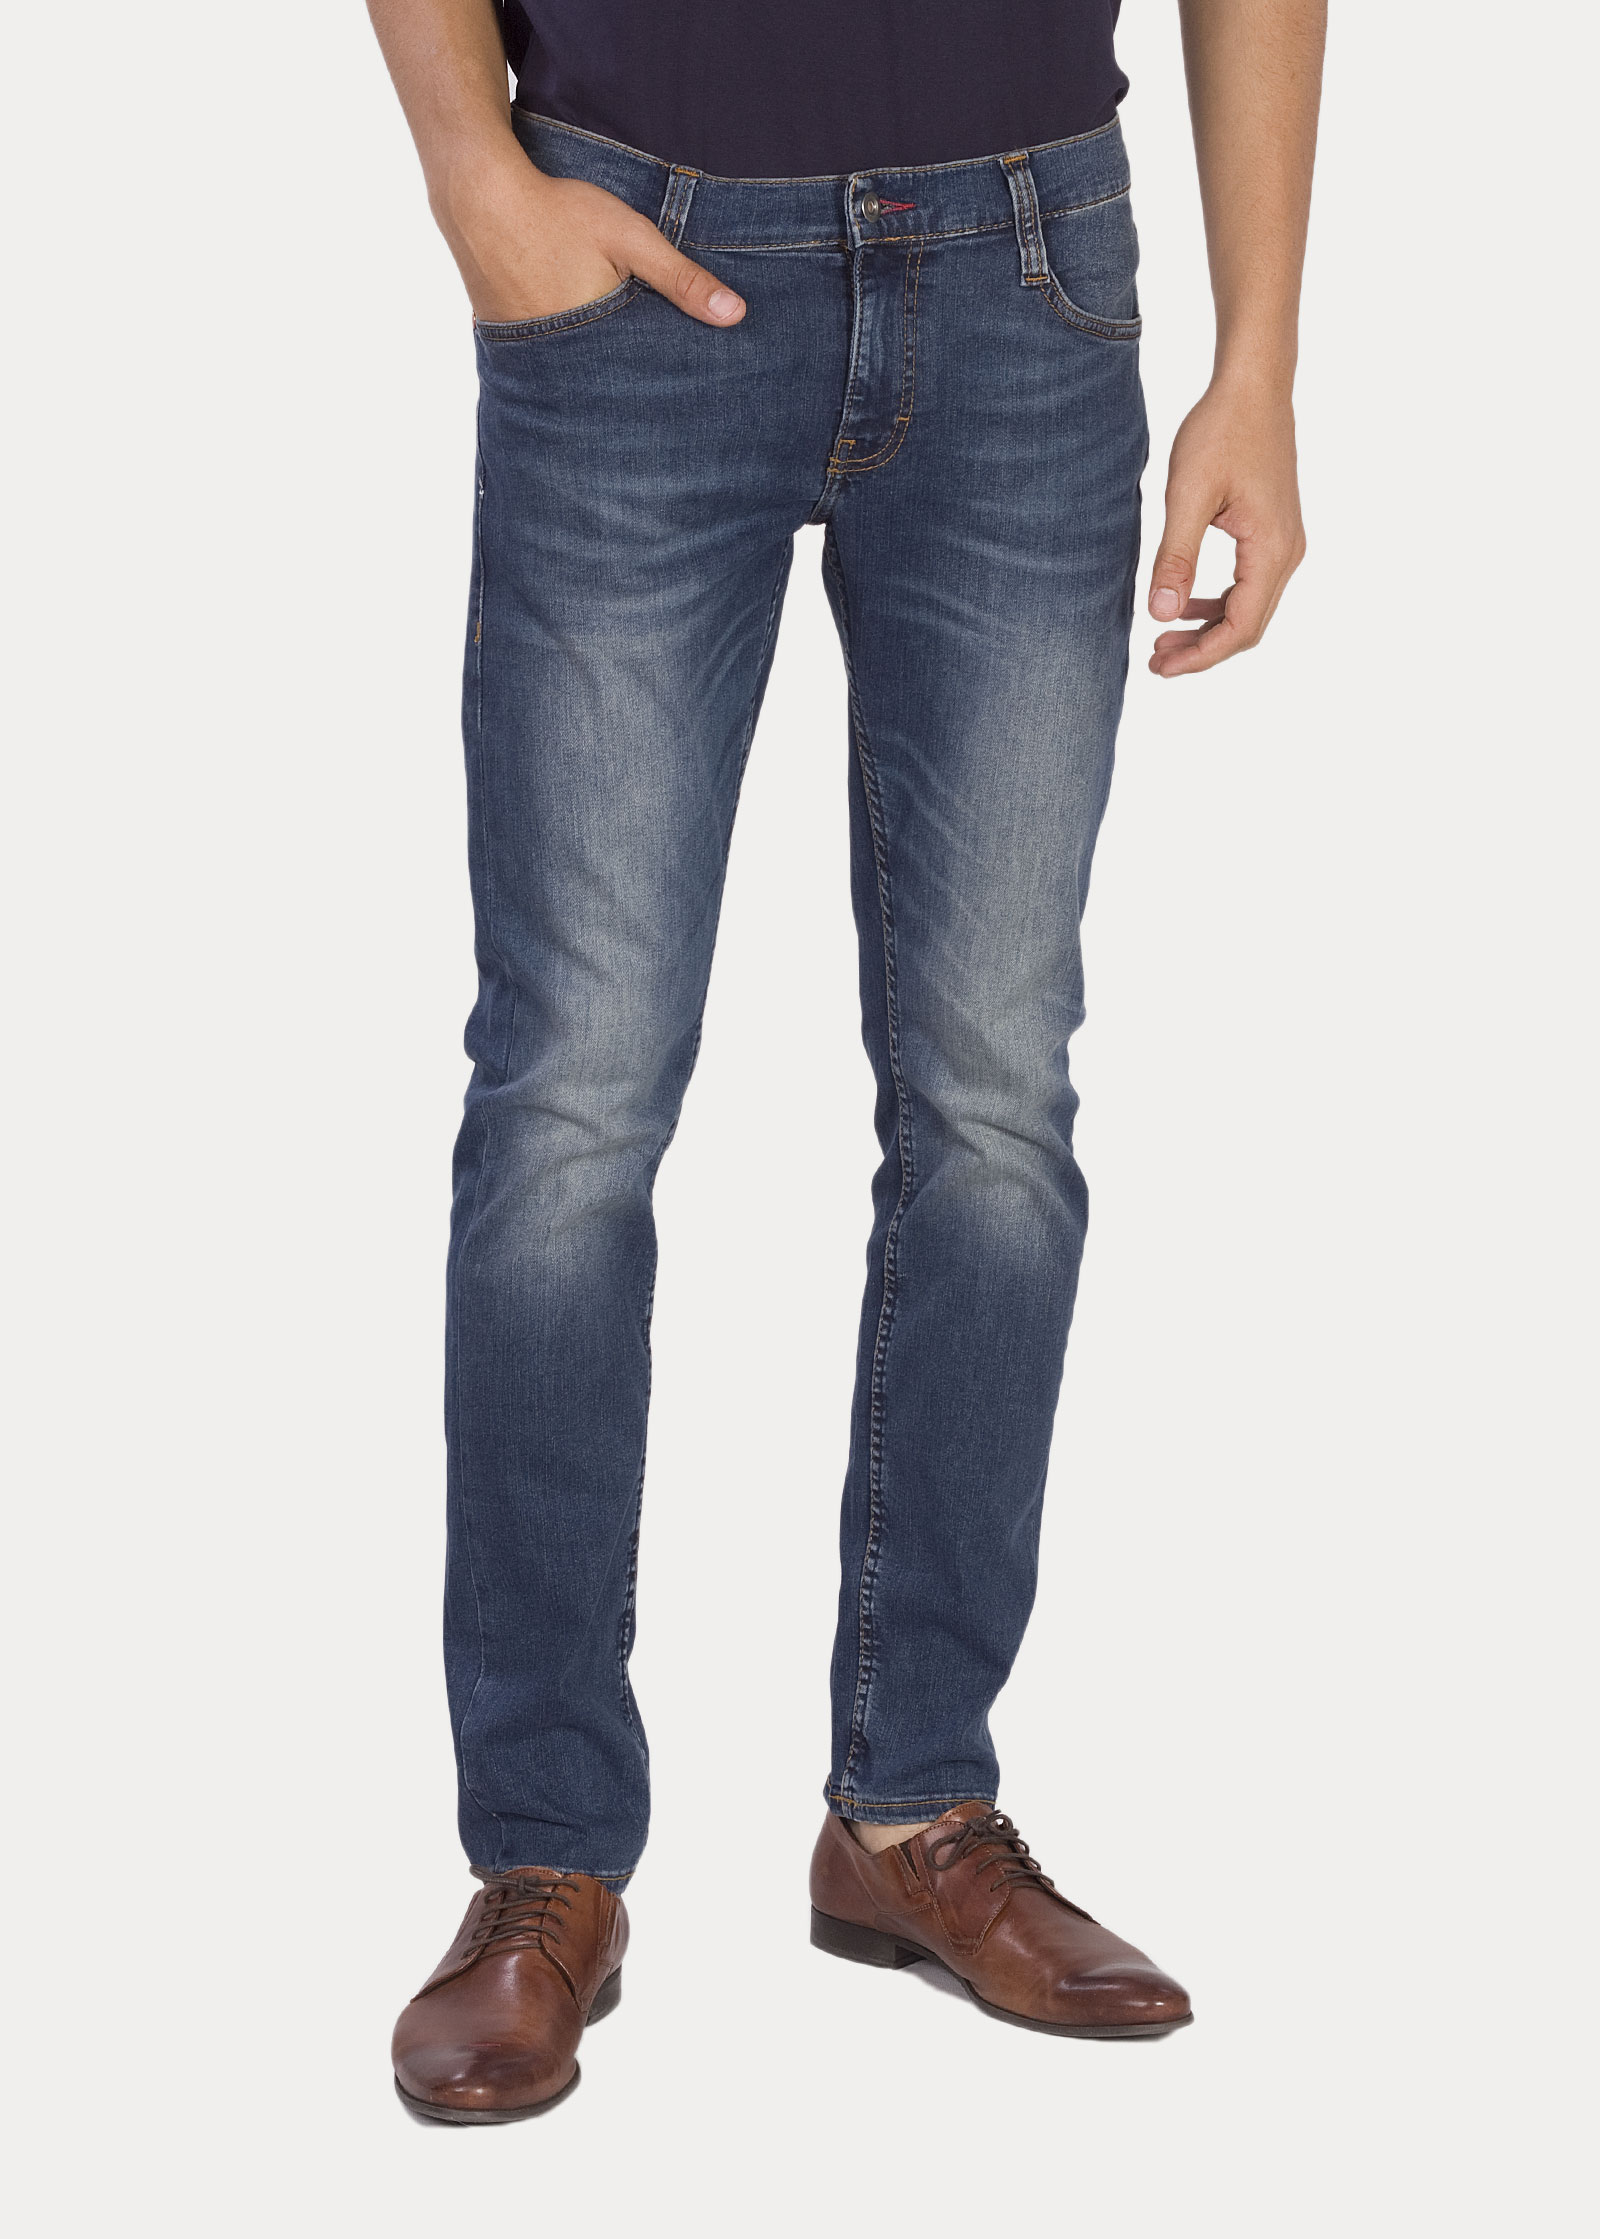 Men s Jeans Mustang® Oregon Tapered - Stone (3116-5764-068 ... 14b6a8be99